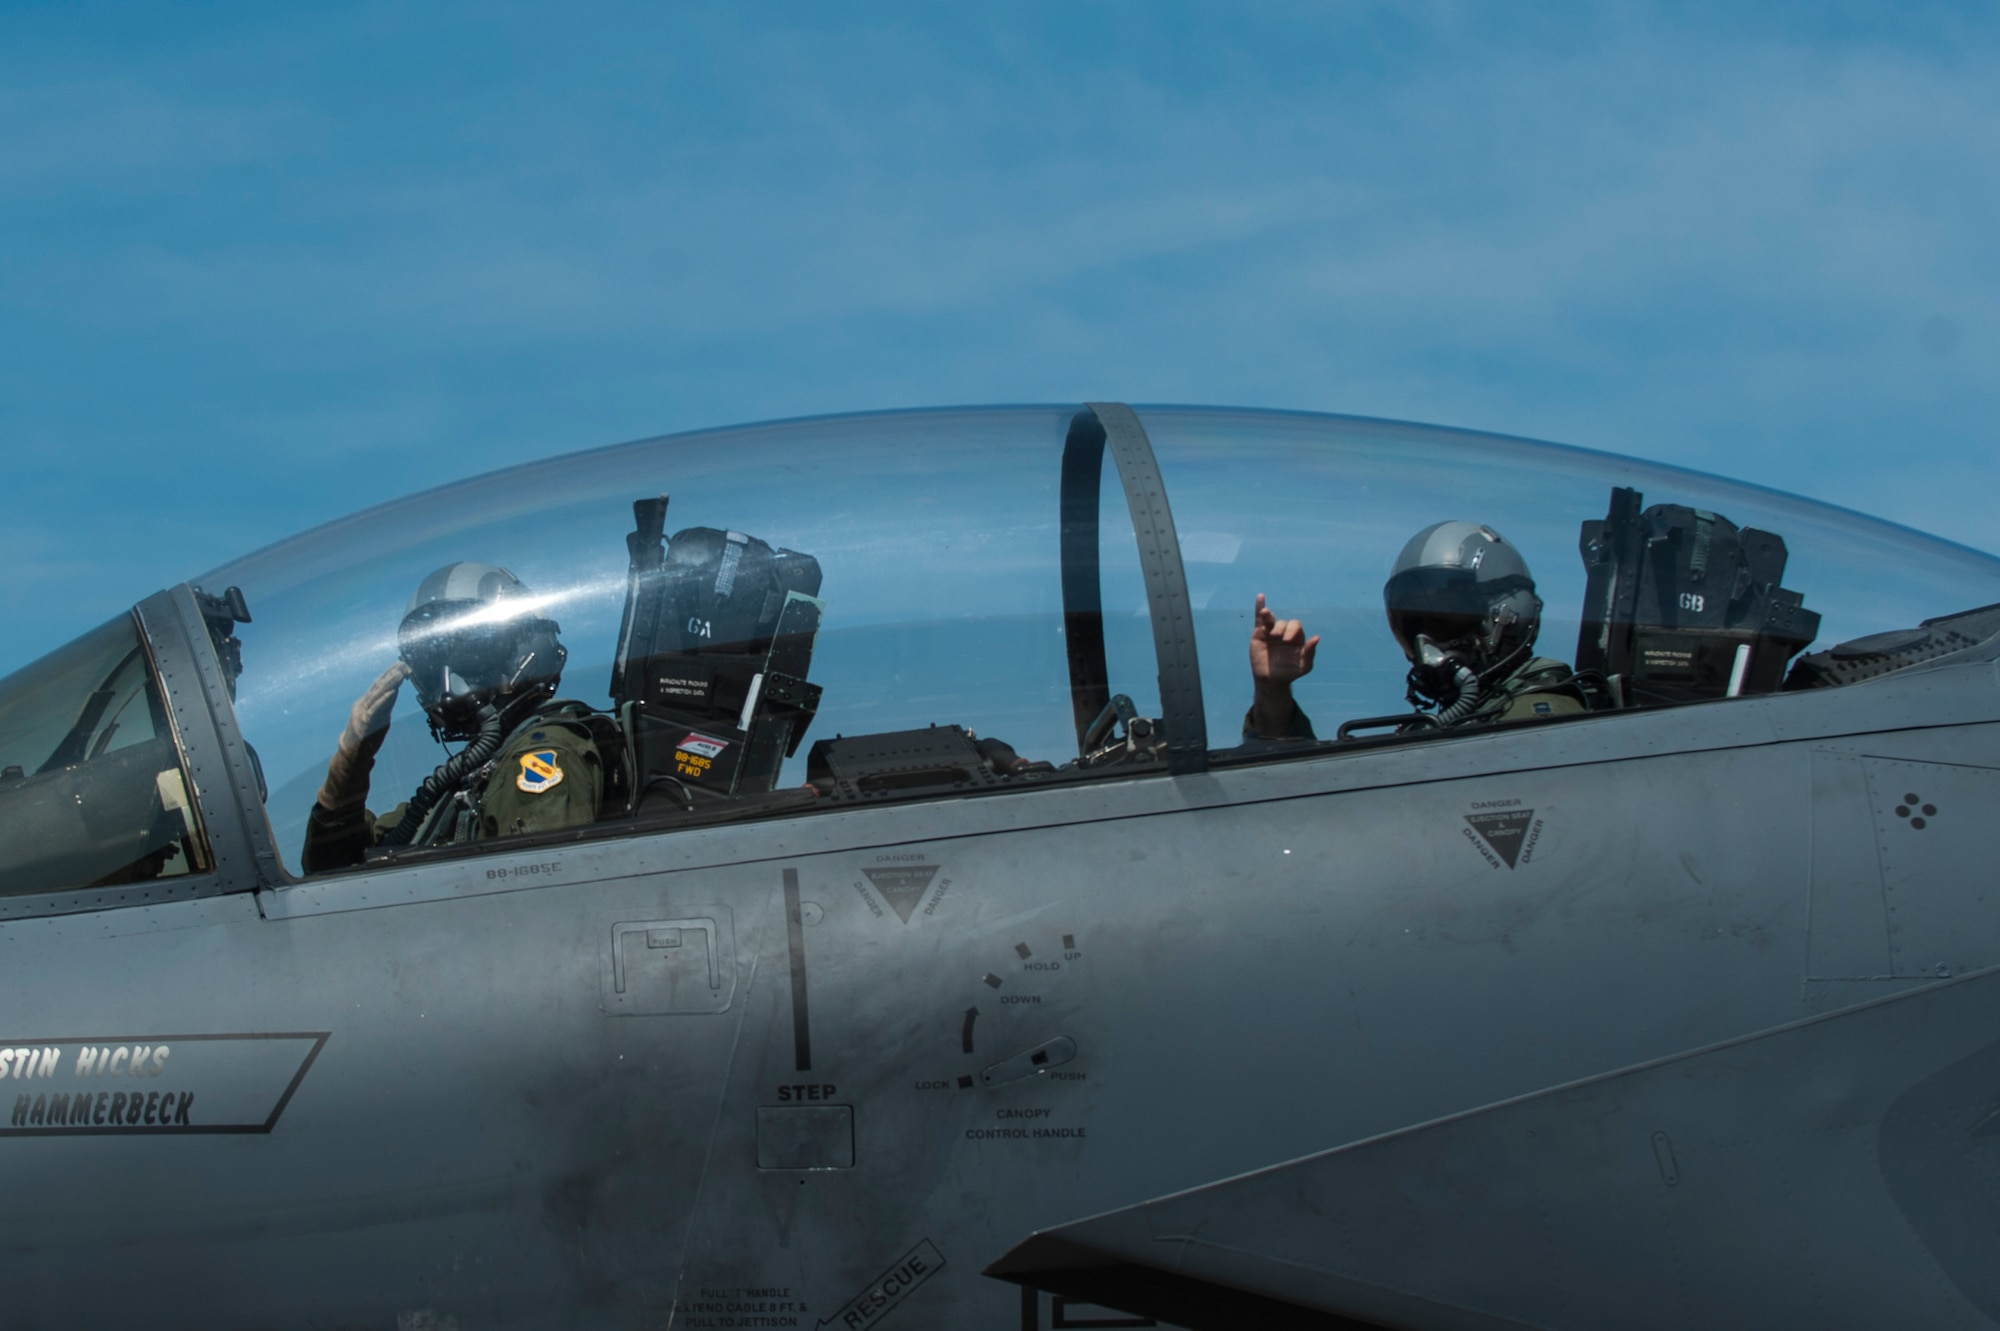 Lt. Col. Paul Hibbard, a 333rd Fighter Squadron instructor pilot, and Capt. Justin Thompson, a 333rd FS pilot, signal their crew chief as they taxi to the runway, July 22, 2015, at Seymour Johnson Air Force Base, N.C. After flying in operational squadrons for most of his career, Hibbard now instructs F-15E Strike Eagle aircrew on the intricacies of operating the aircraft. (U.S. Air Force photo/Airman Shawna L. Keyes)